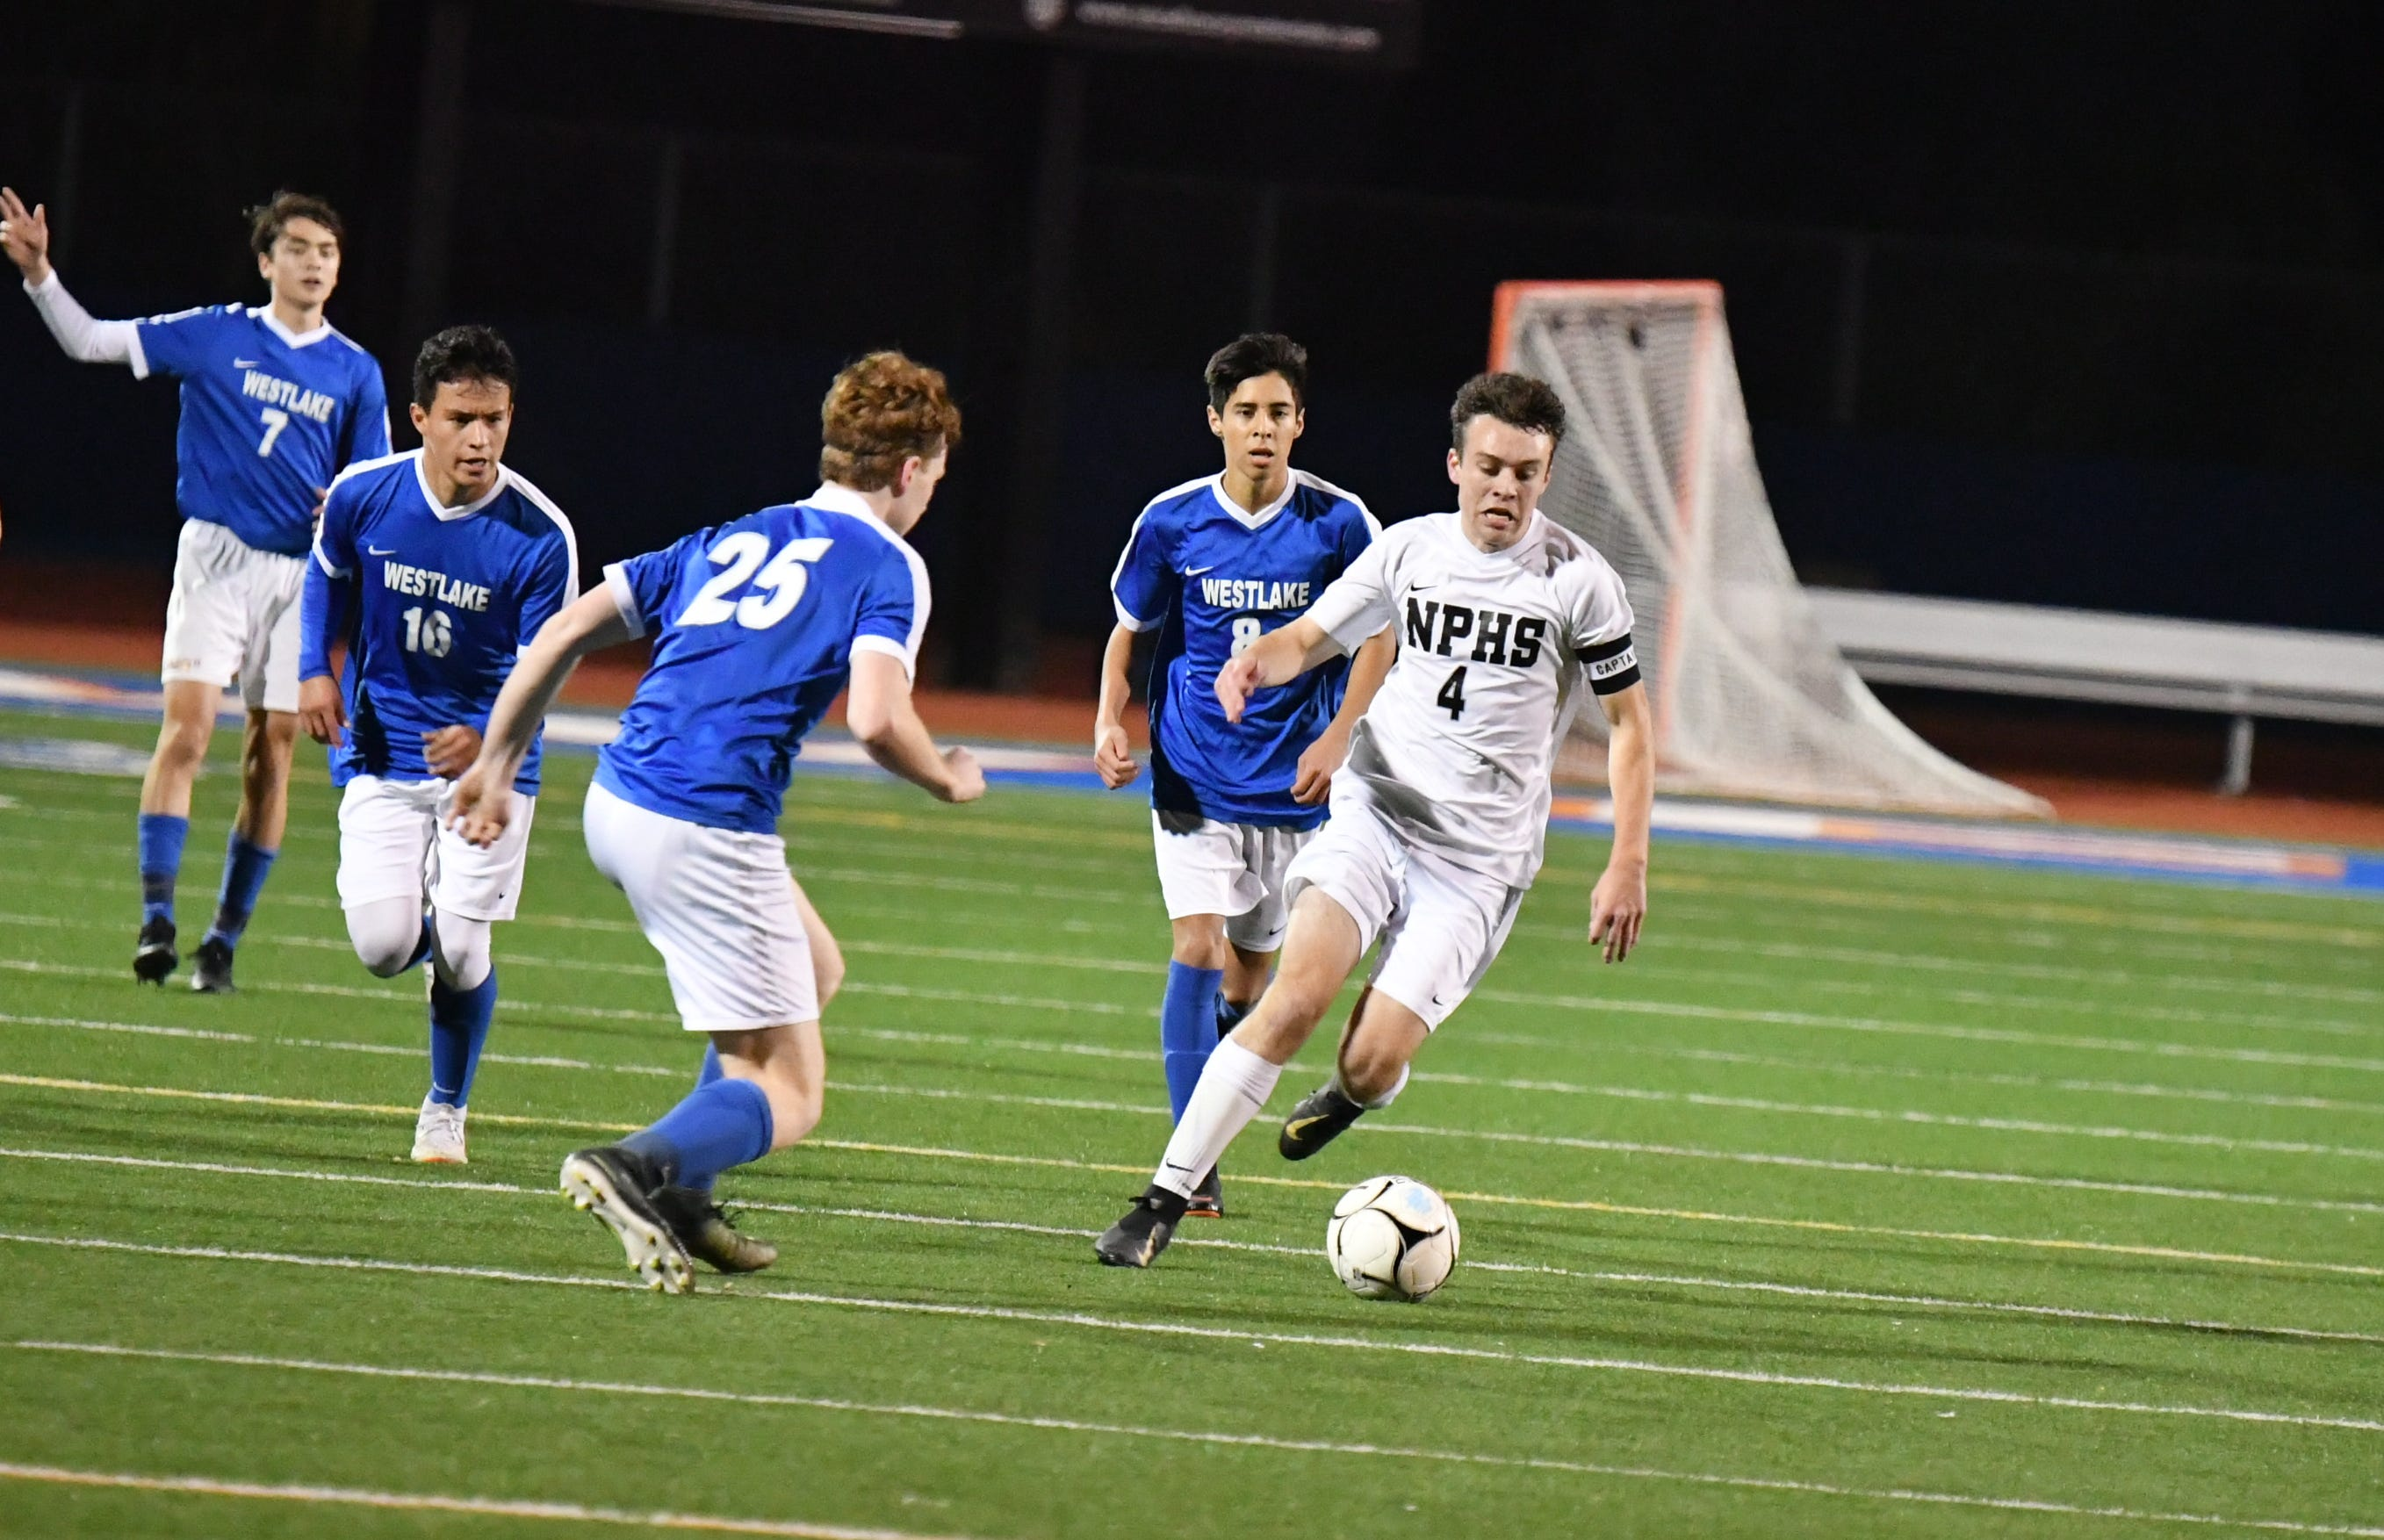 Junior attacking midfielder Luke Varav, shown being chased by opponents earlier this season during a 7-1 win at Westlake, has six goals and a team-high 16 assists for the Newbury Park High boys soccer team.